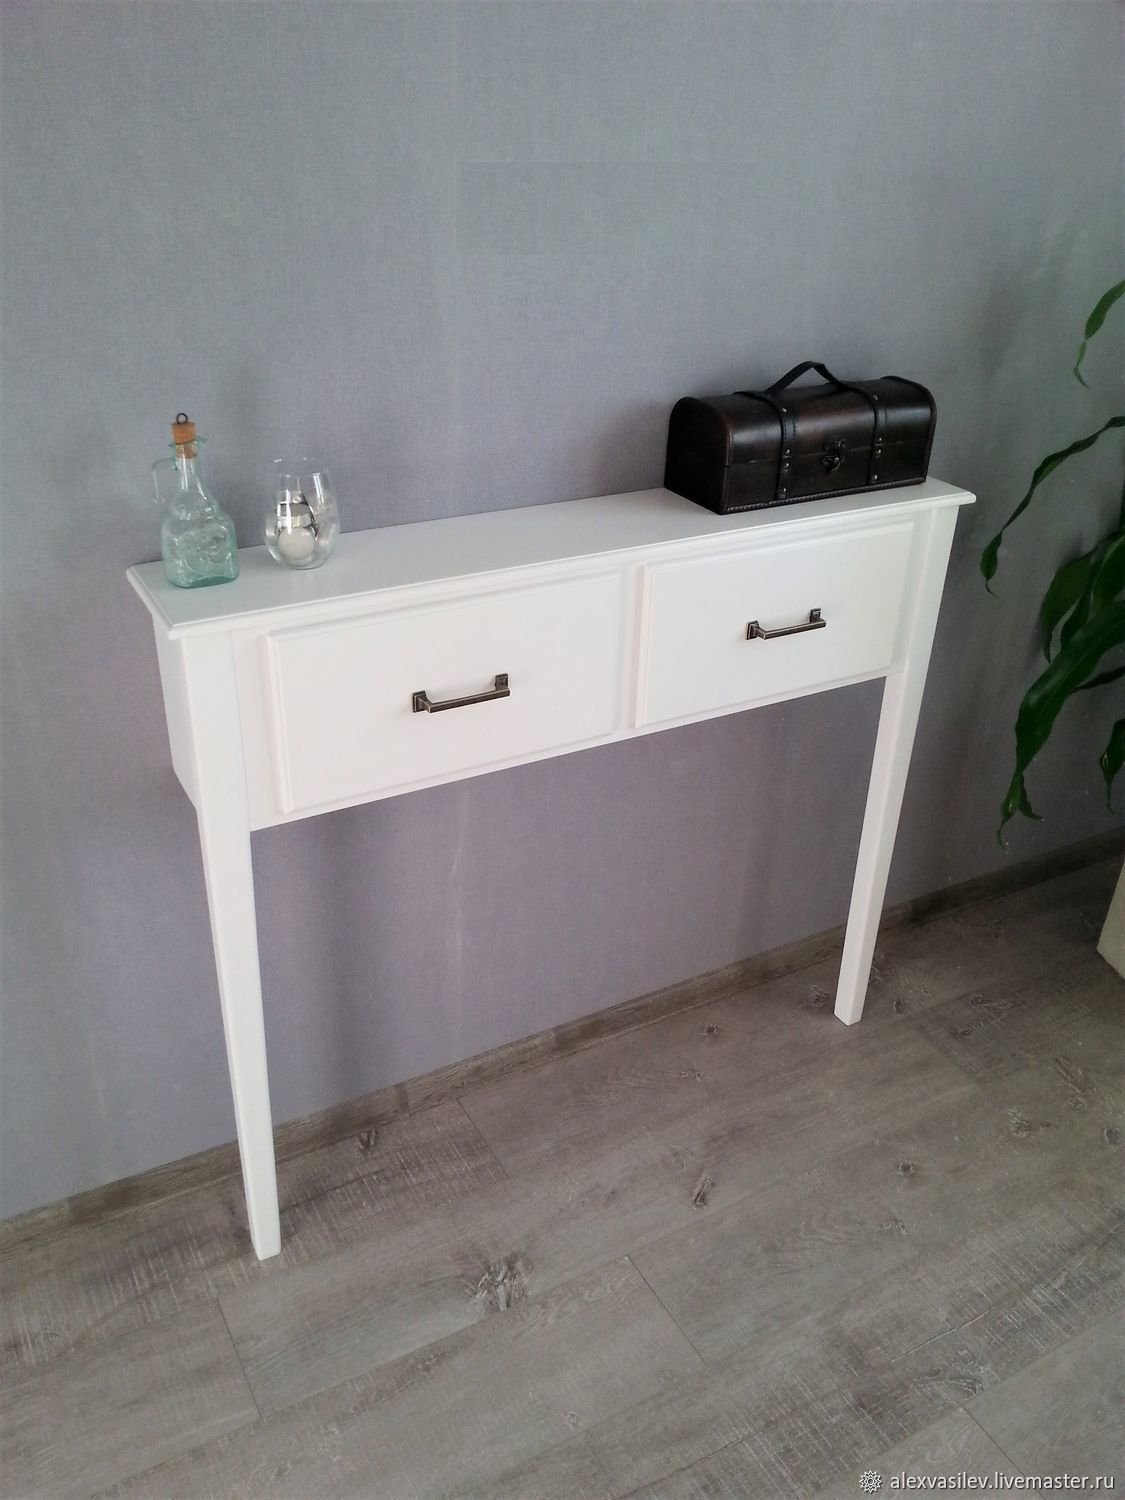 Console table with drawers 'Minnesota Mini', Tables, Moscow, Фото №1